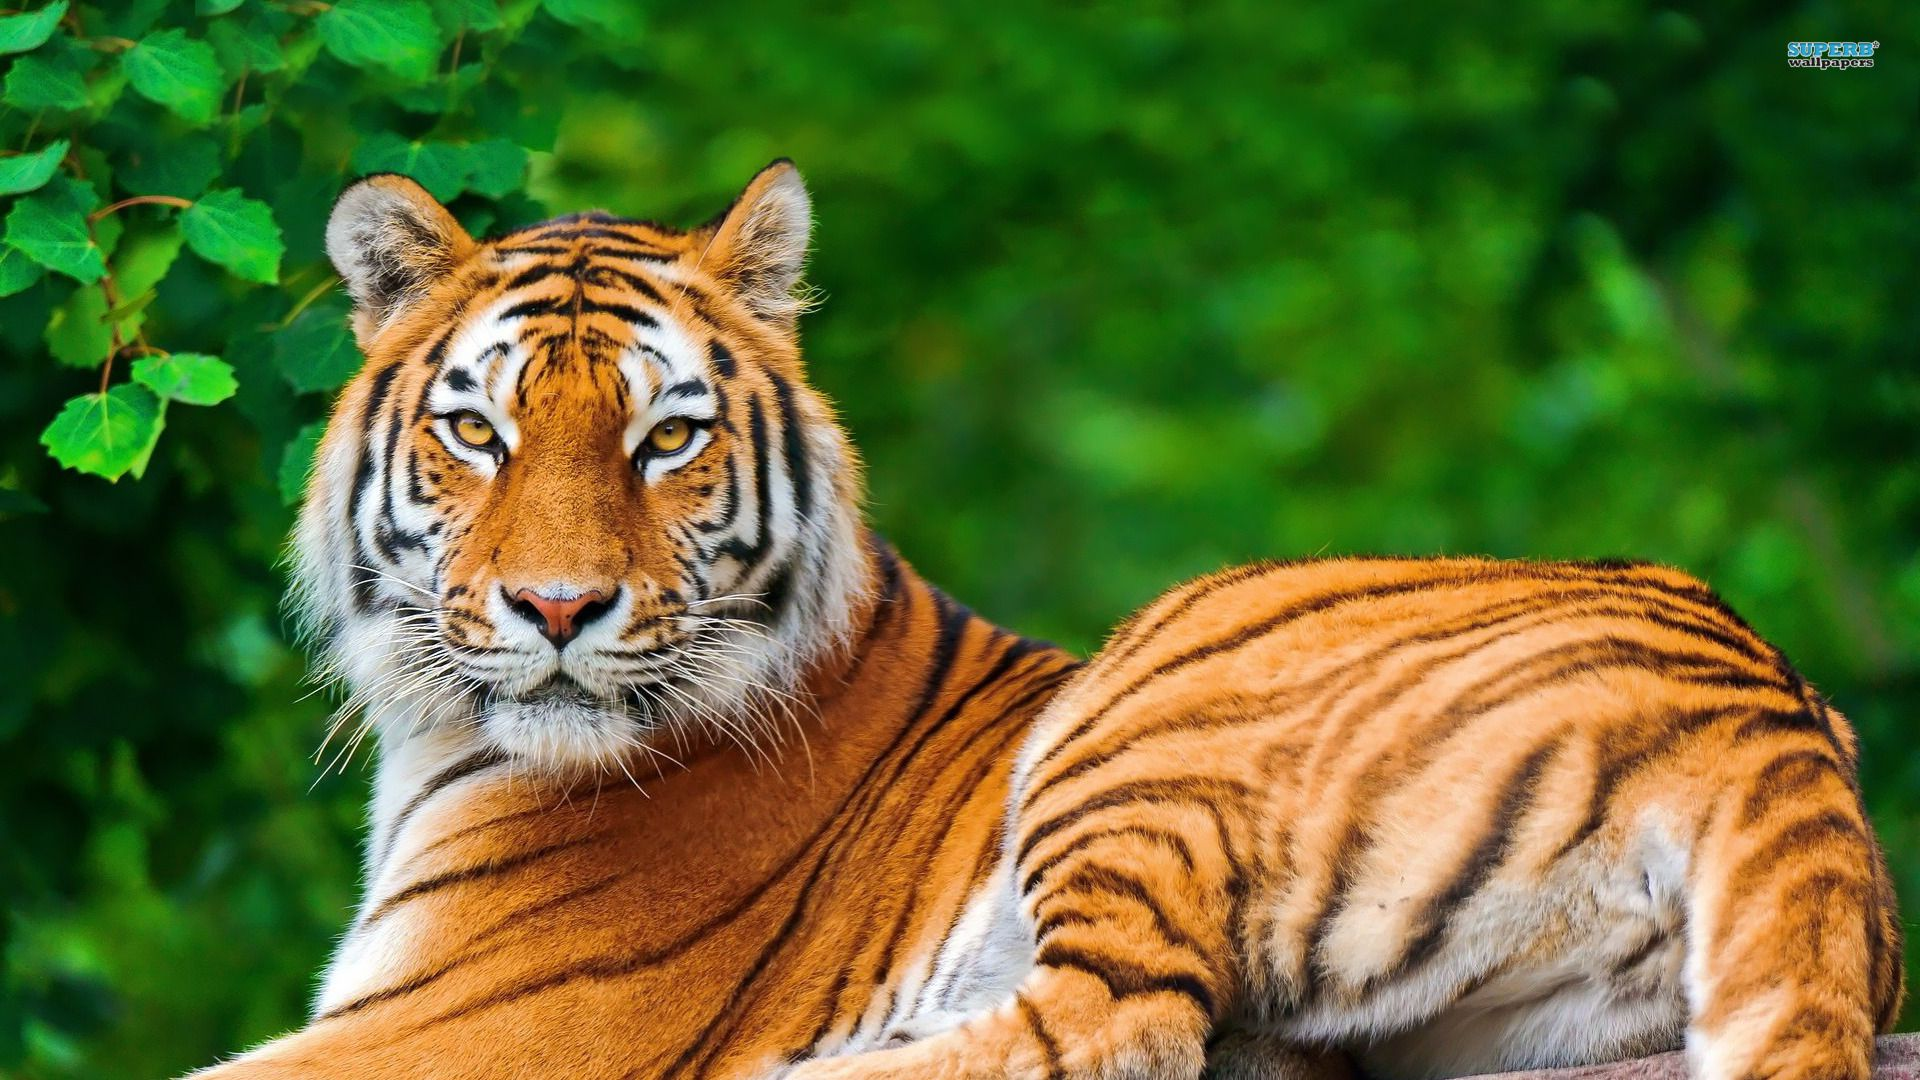 tiger animal wallpaper hd 8 for desktop background  | nature's